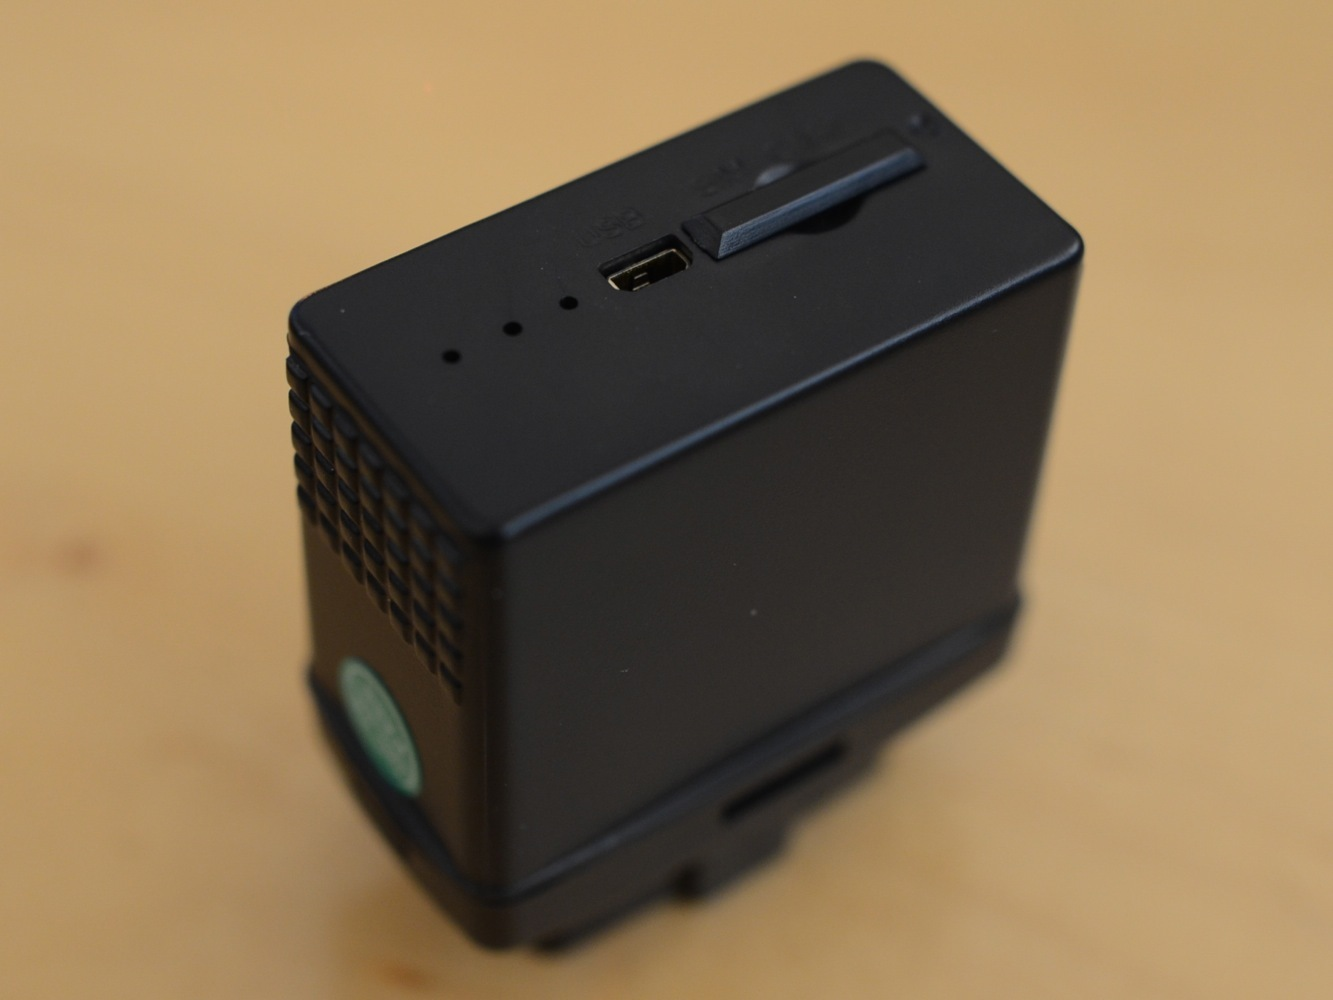 TrackPort GPS Vehicle Tracker